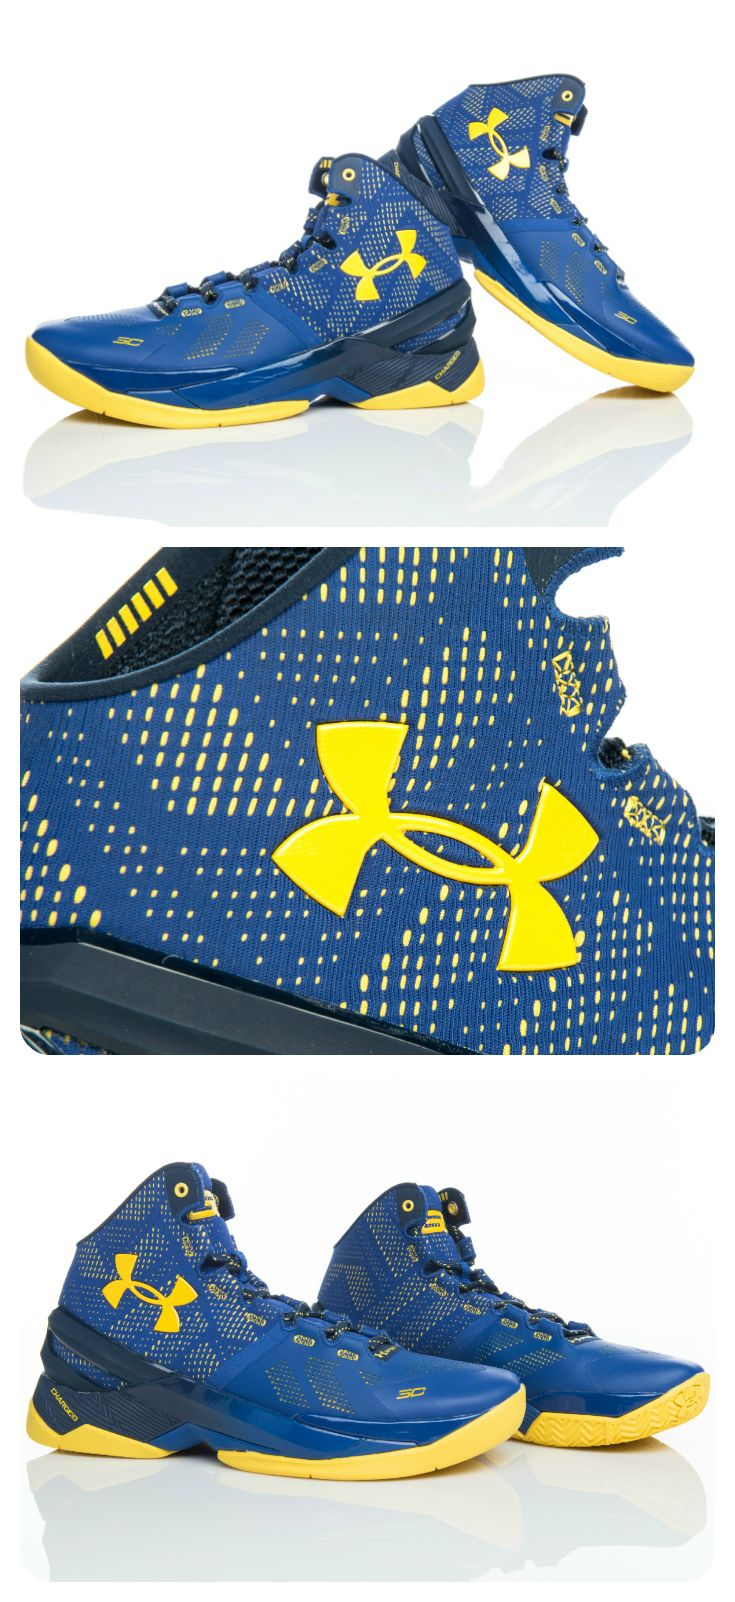 These Oakland-inspired Under Armour Curry 2 'Dub Nation' court shoes are available now.